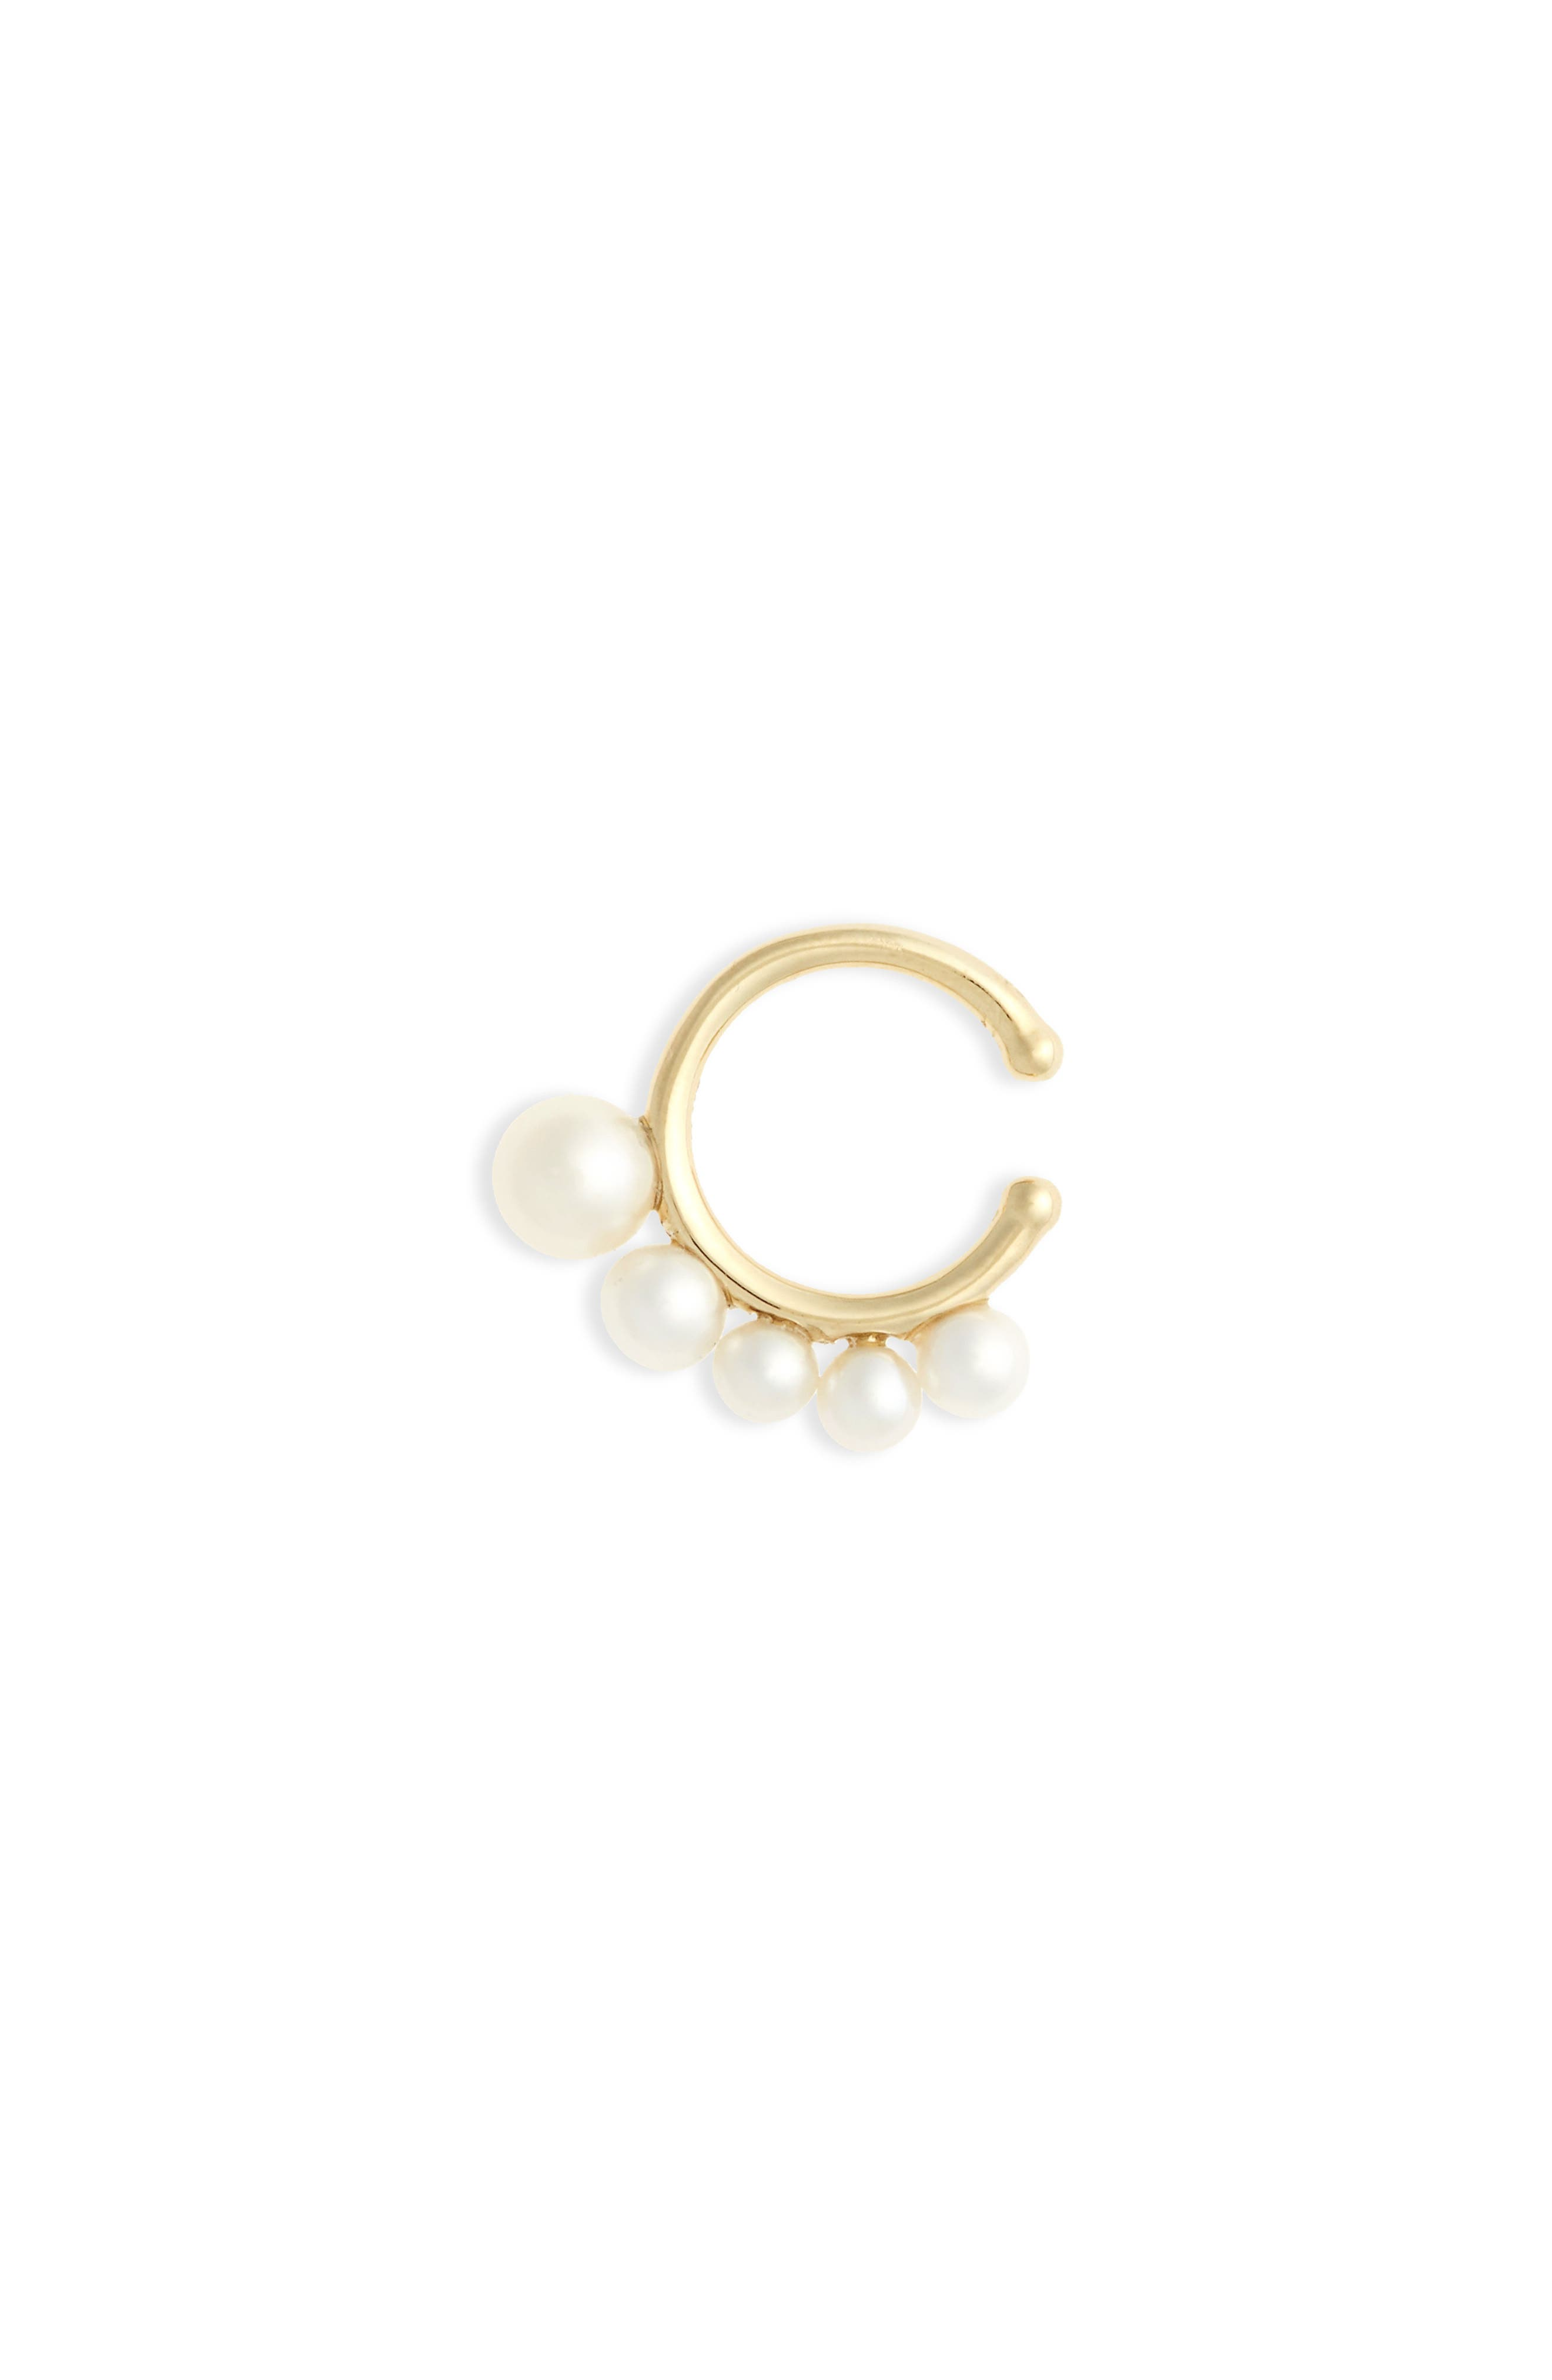 Sea of Beauty Graduated Pearl Ear Cuff,                             Main thumbnail 1, color,                             YELLOW GOLD/ WHITE PEARL